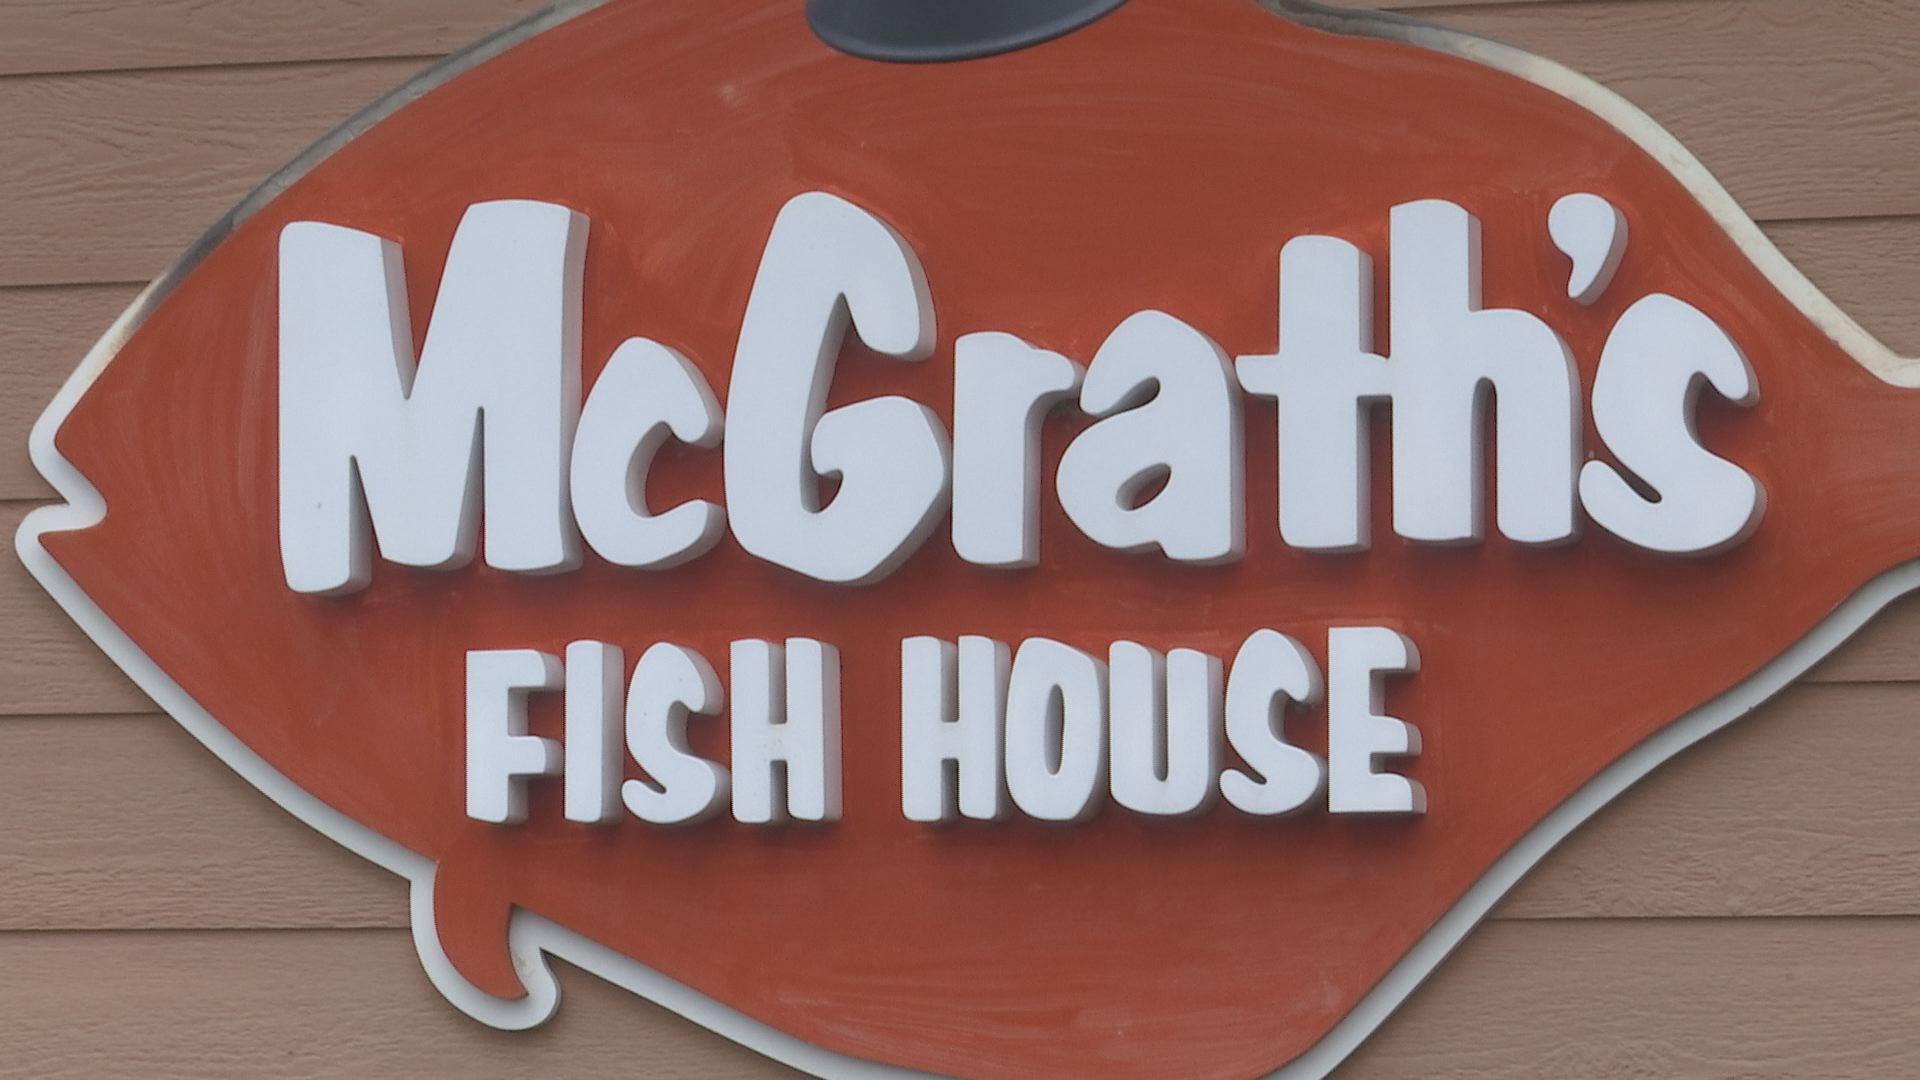 Mcgrath 39 s fish house broken into kobi tv nbc5 koti tv nbc2 for Mcgraths fish house